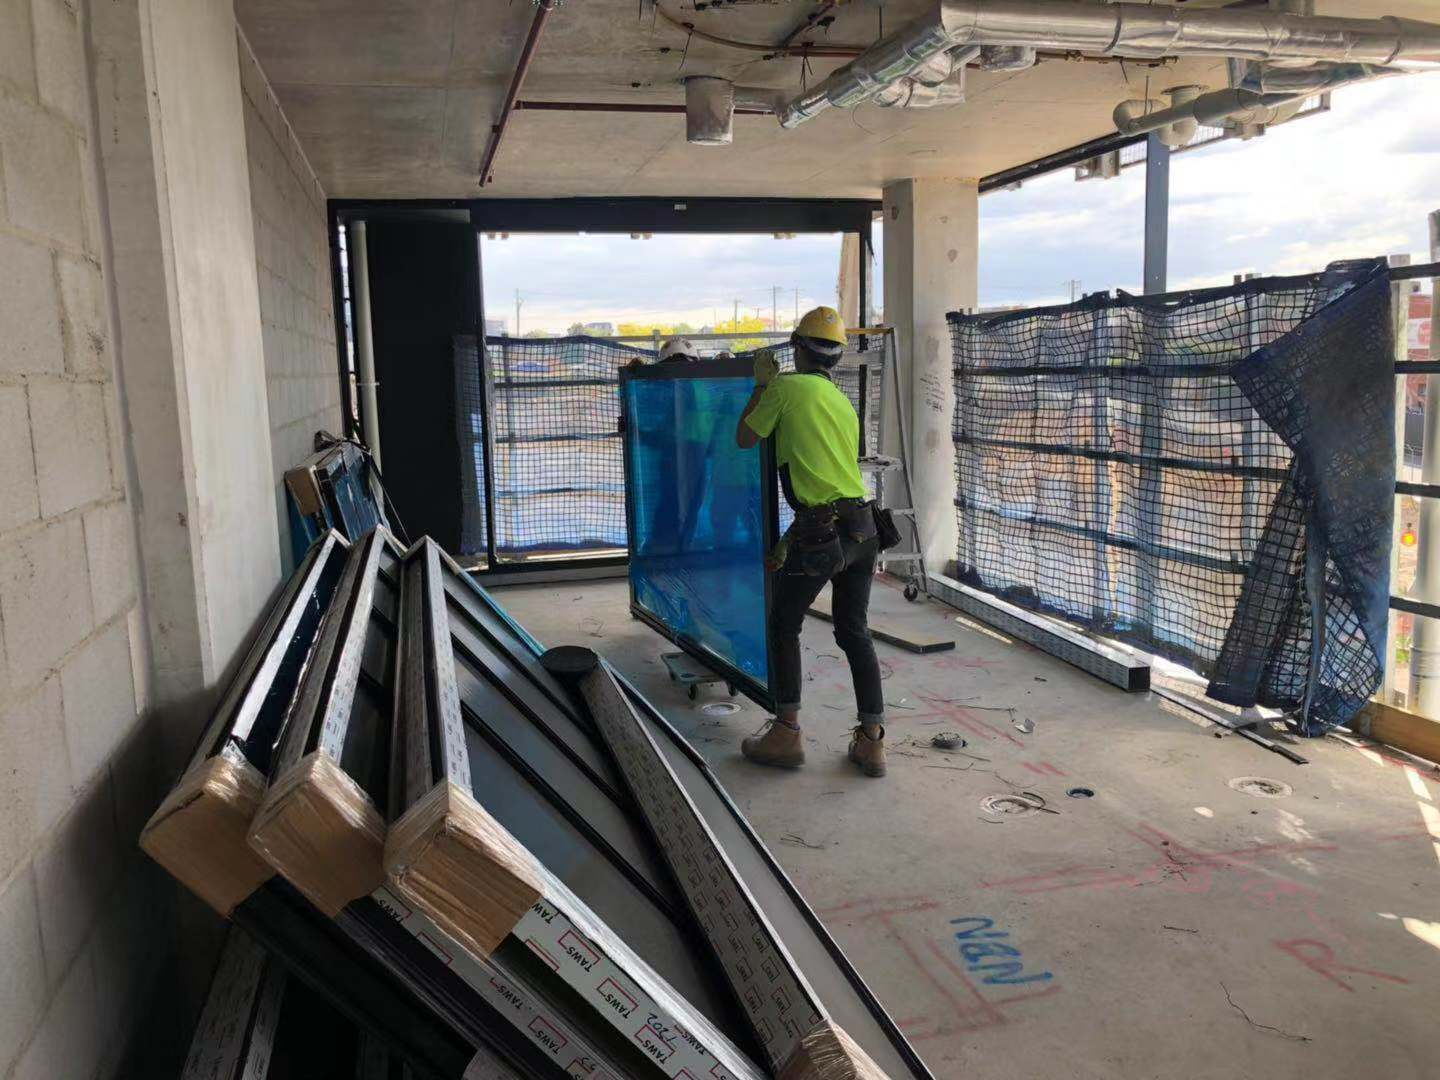 Carrying Glazing carefully on the worksite